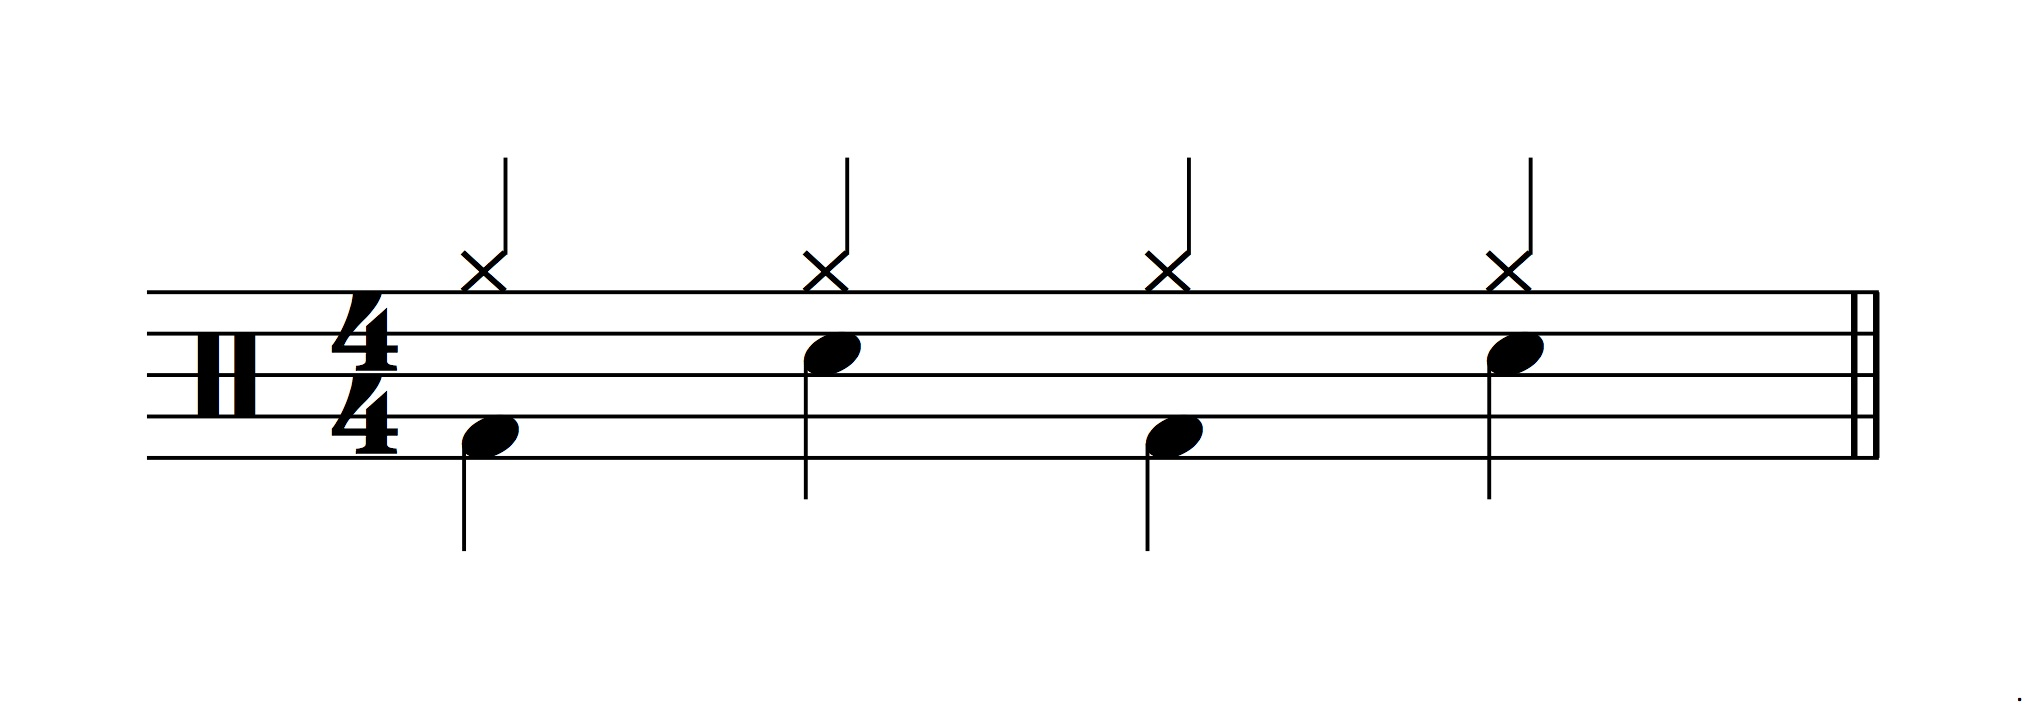 Figure 1.: Standard rock beat, showing a normative kick, snare, and hi-hat pattern.